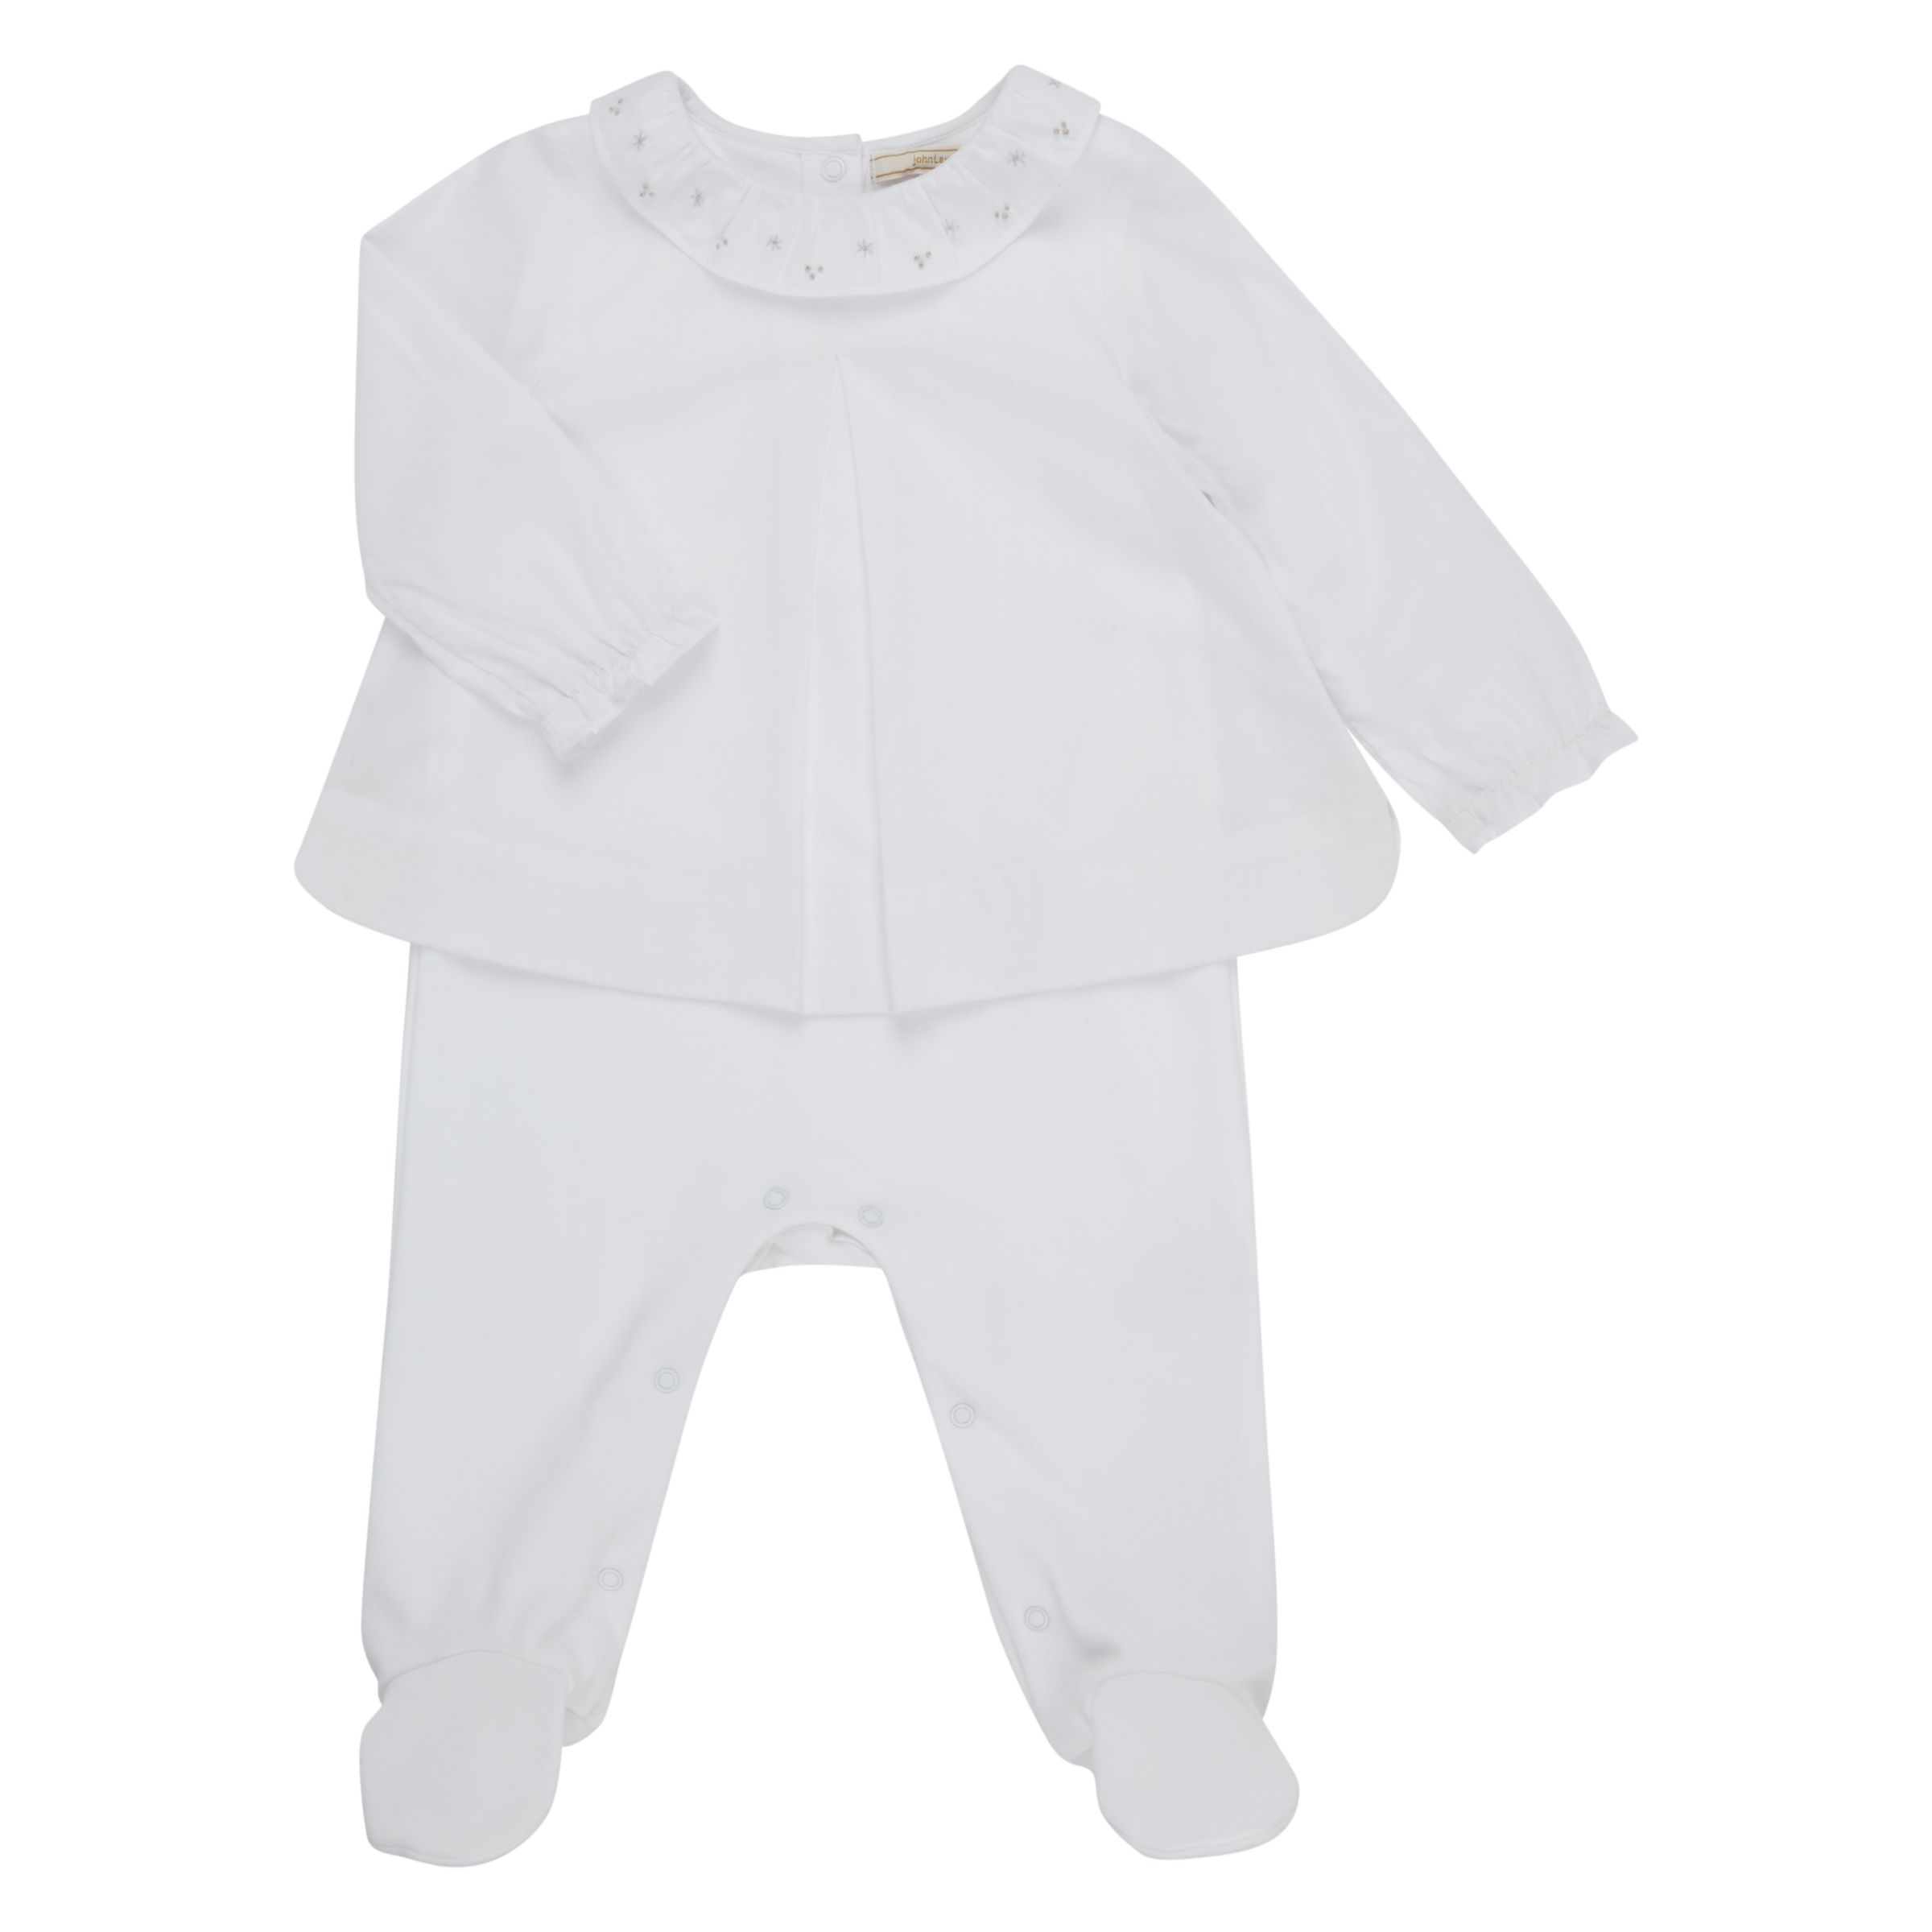 John Lewis Heirloom Collection John Lewis Heirloom Collection Baby Woven Blouse Sleepsuit, White